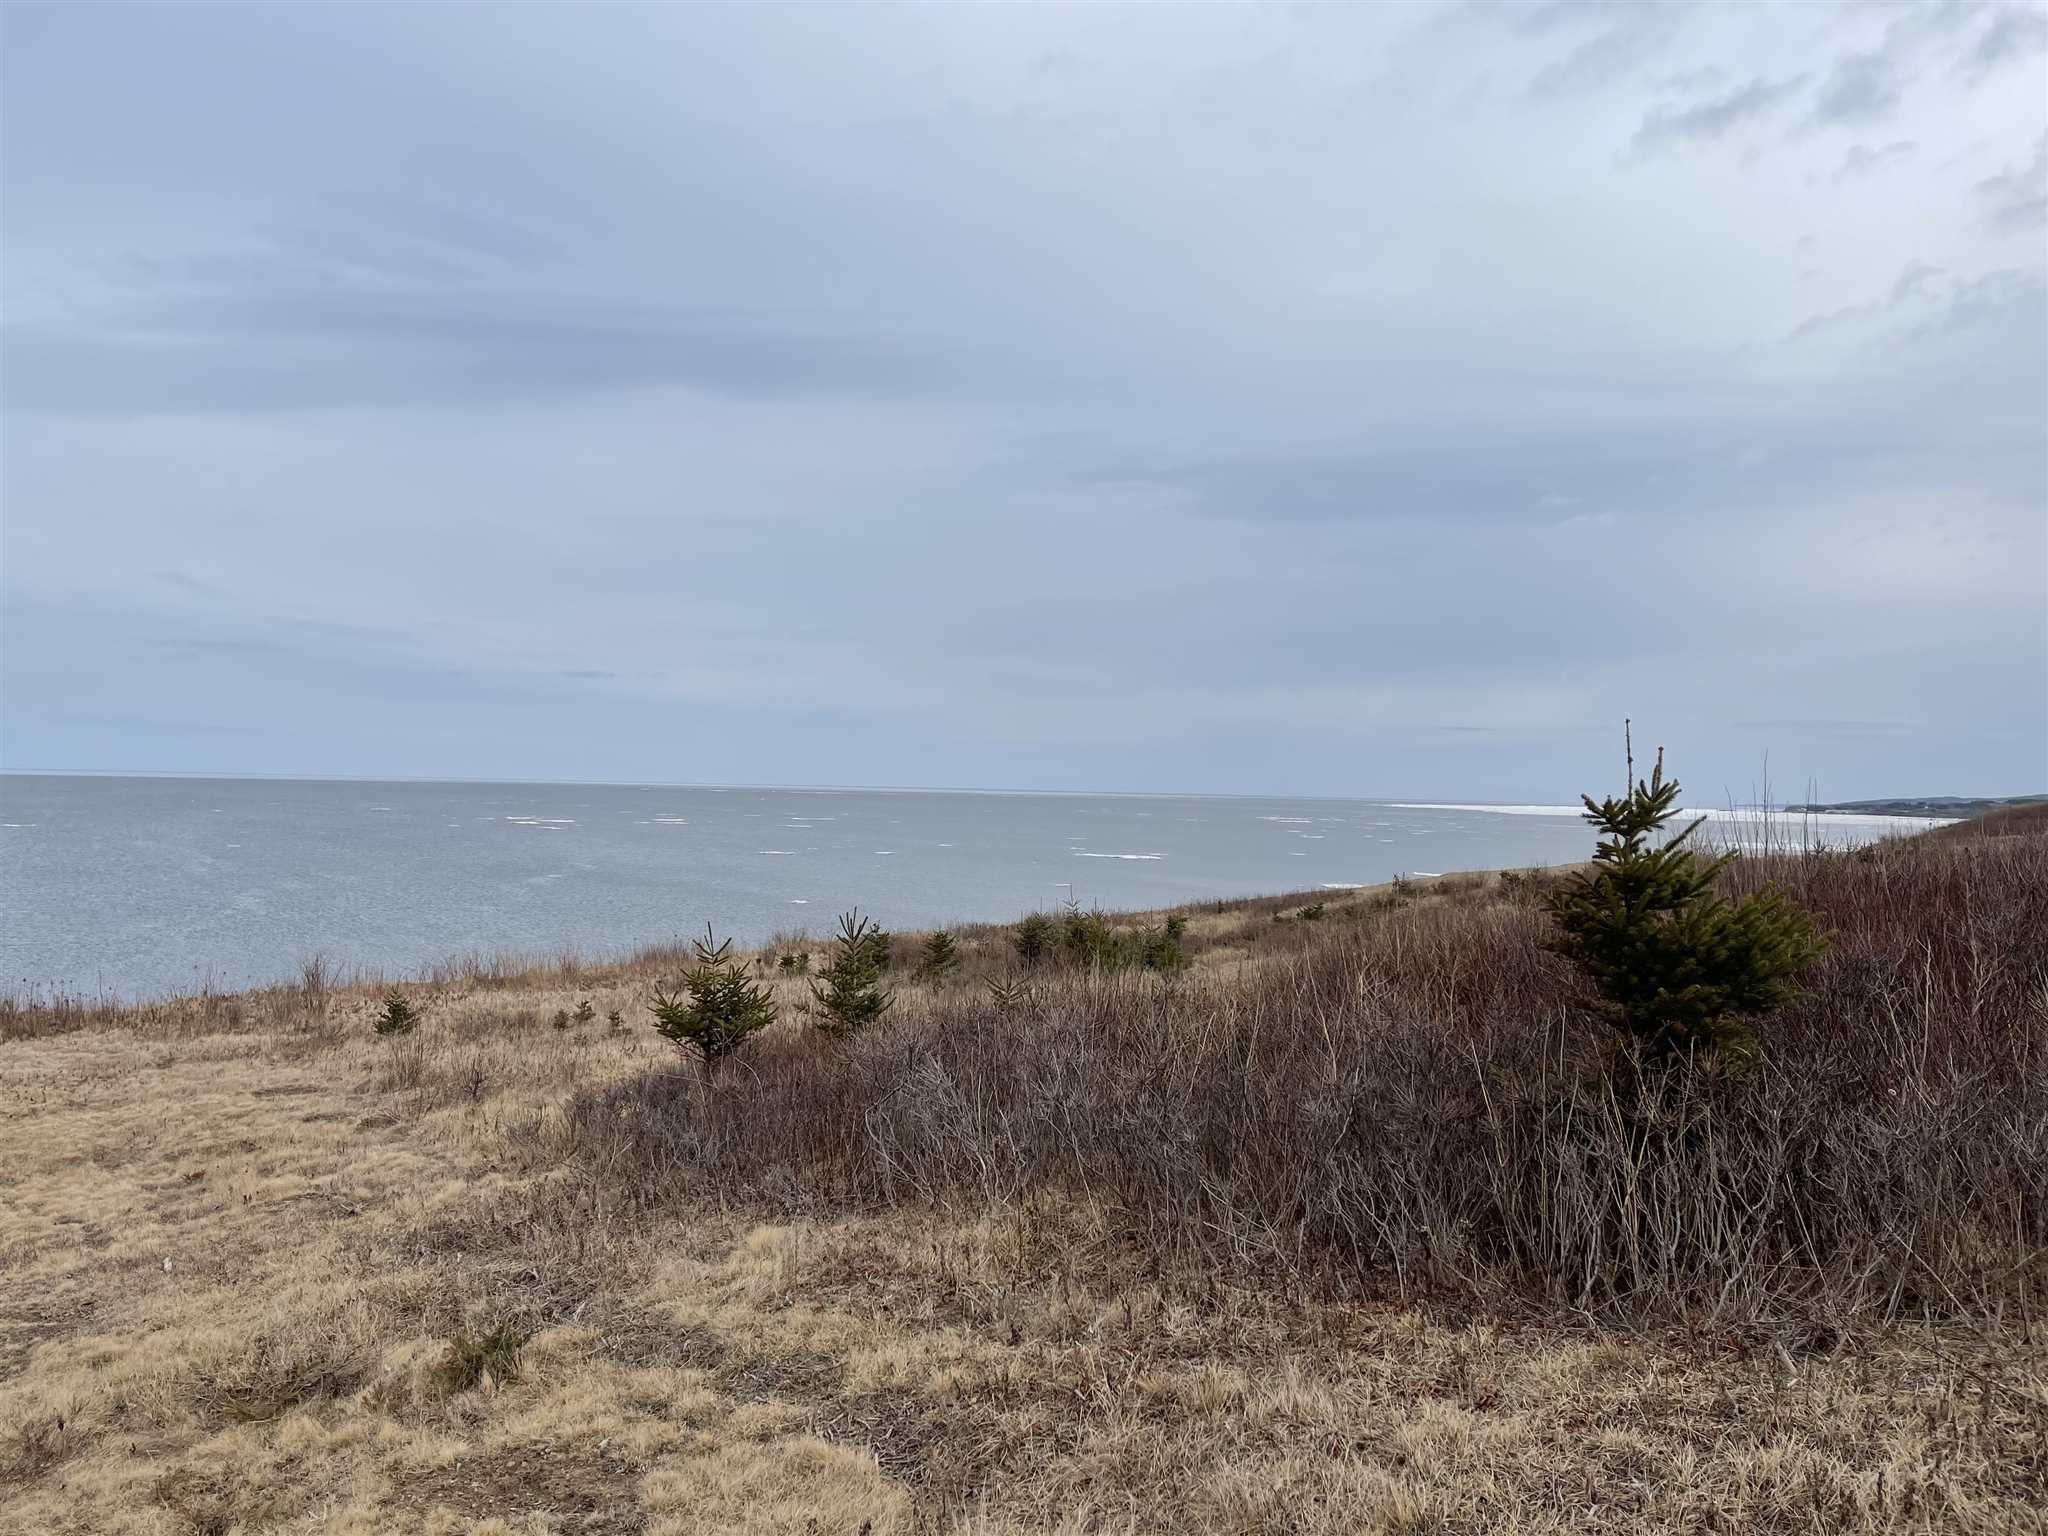 Main Photo: Lot 4 Dawson Drive in Ponds: 108-Rural Pictou County Vacant Land for sale (Northern Region)  : MLS®# 202106614